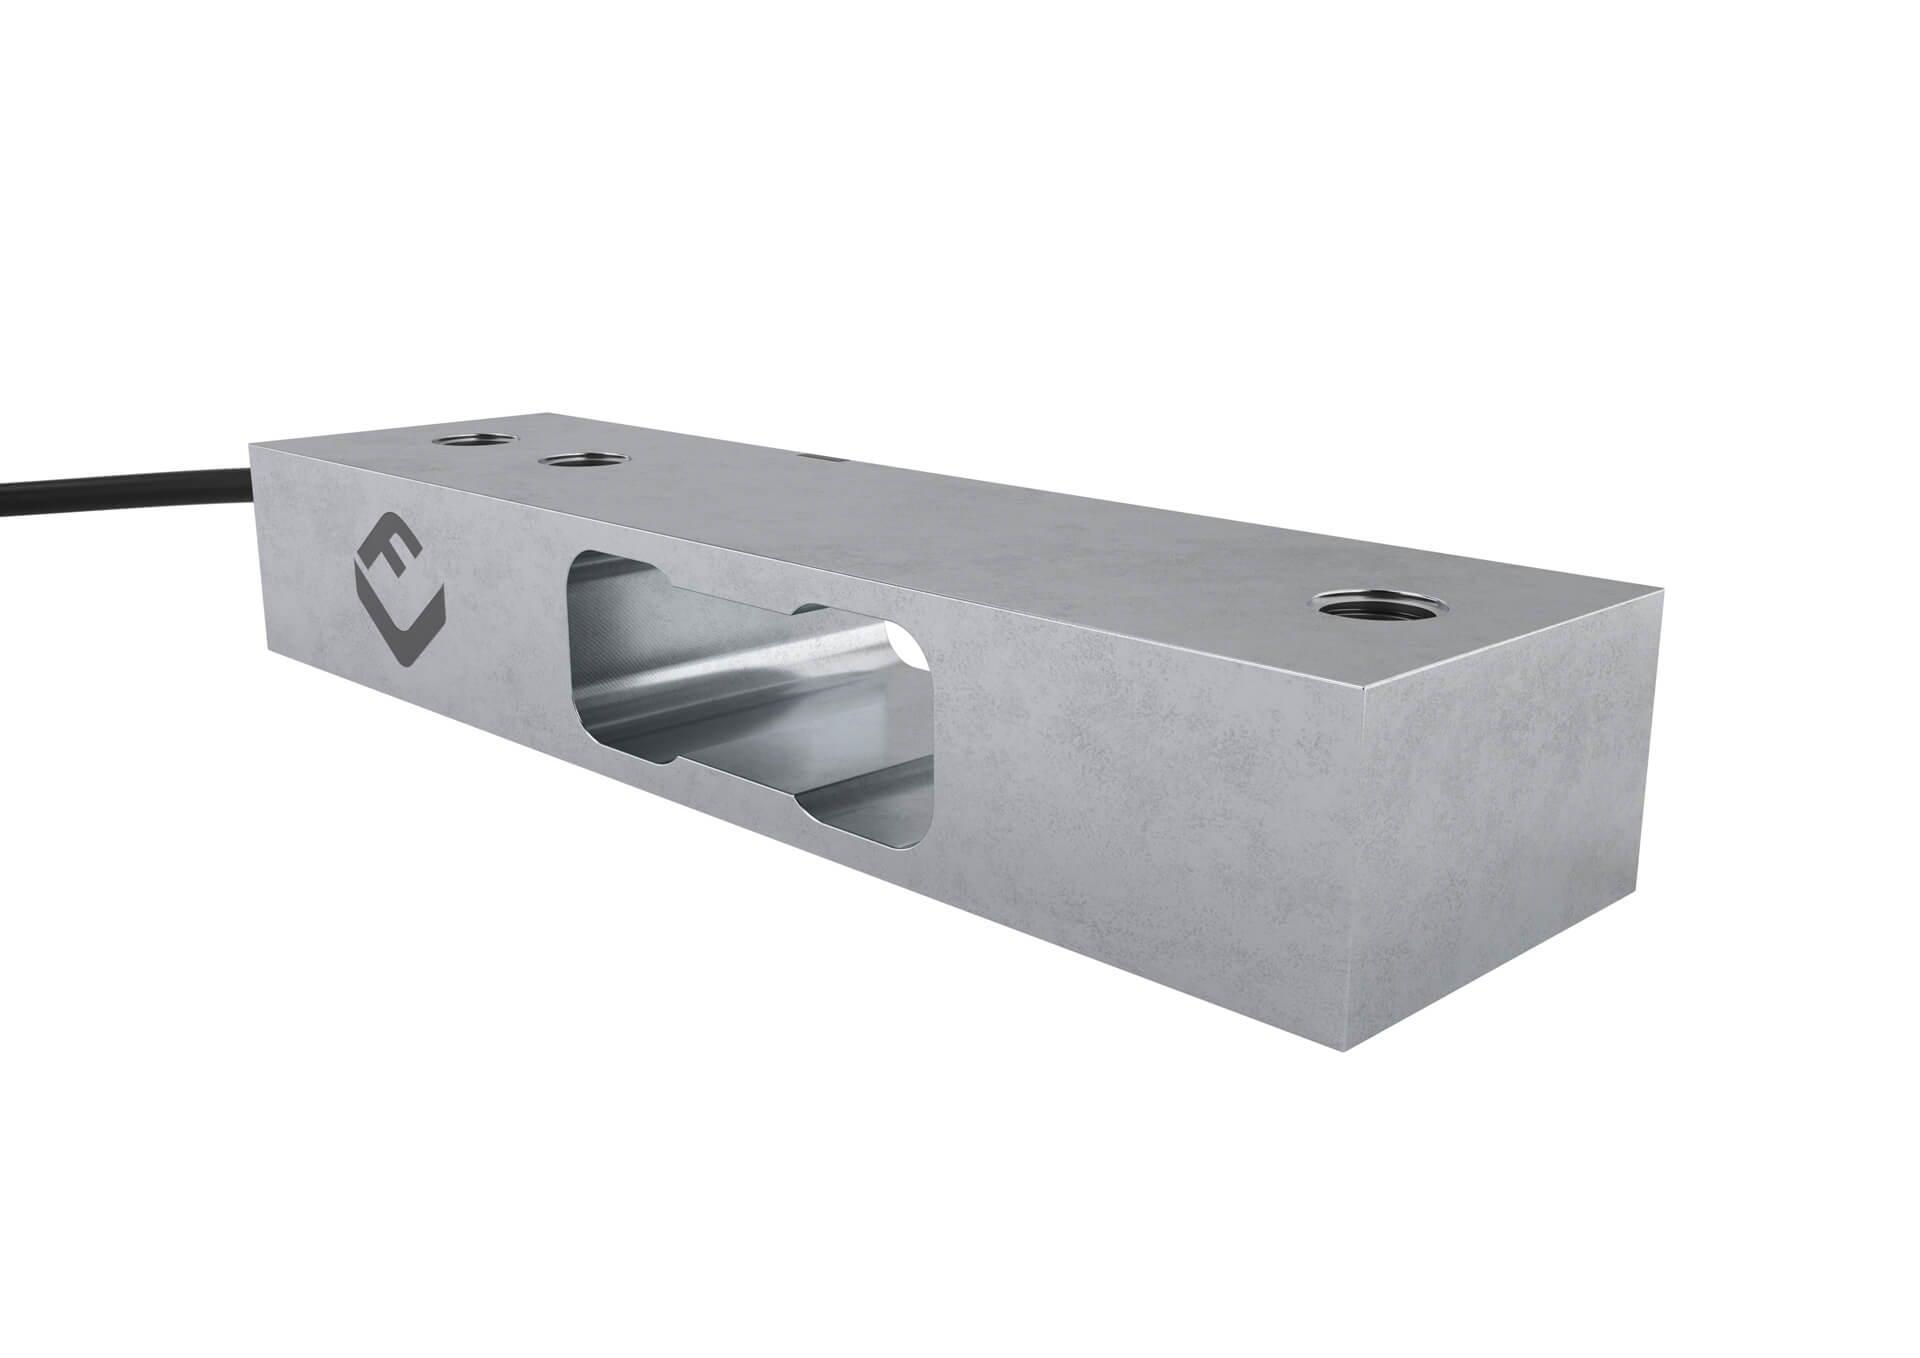 SB61C single point load cell (50kg) Image